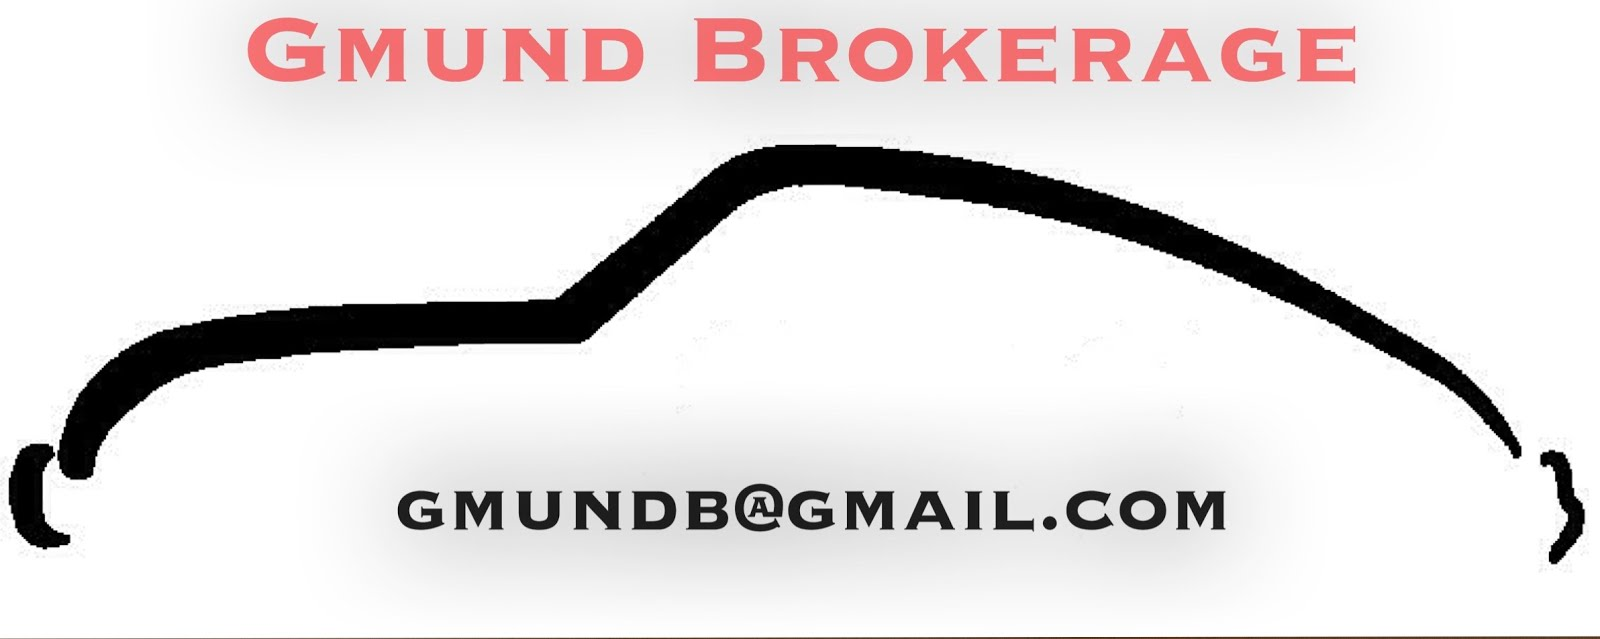 Gmund Brokerage